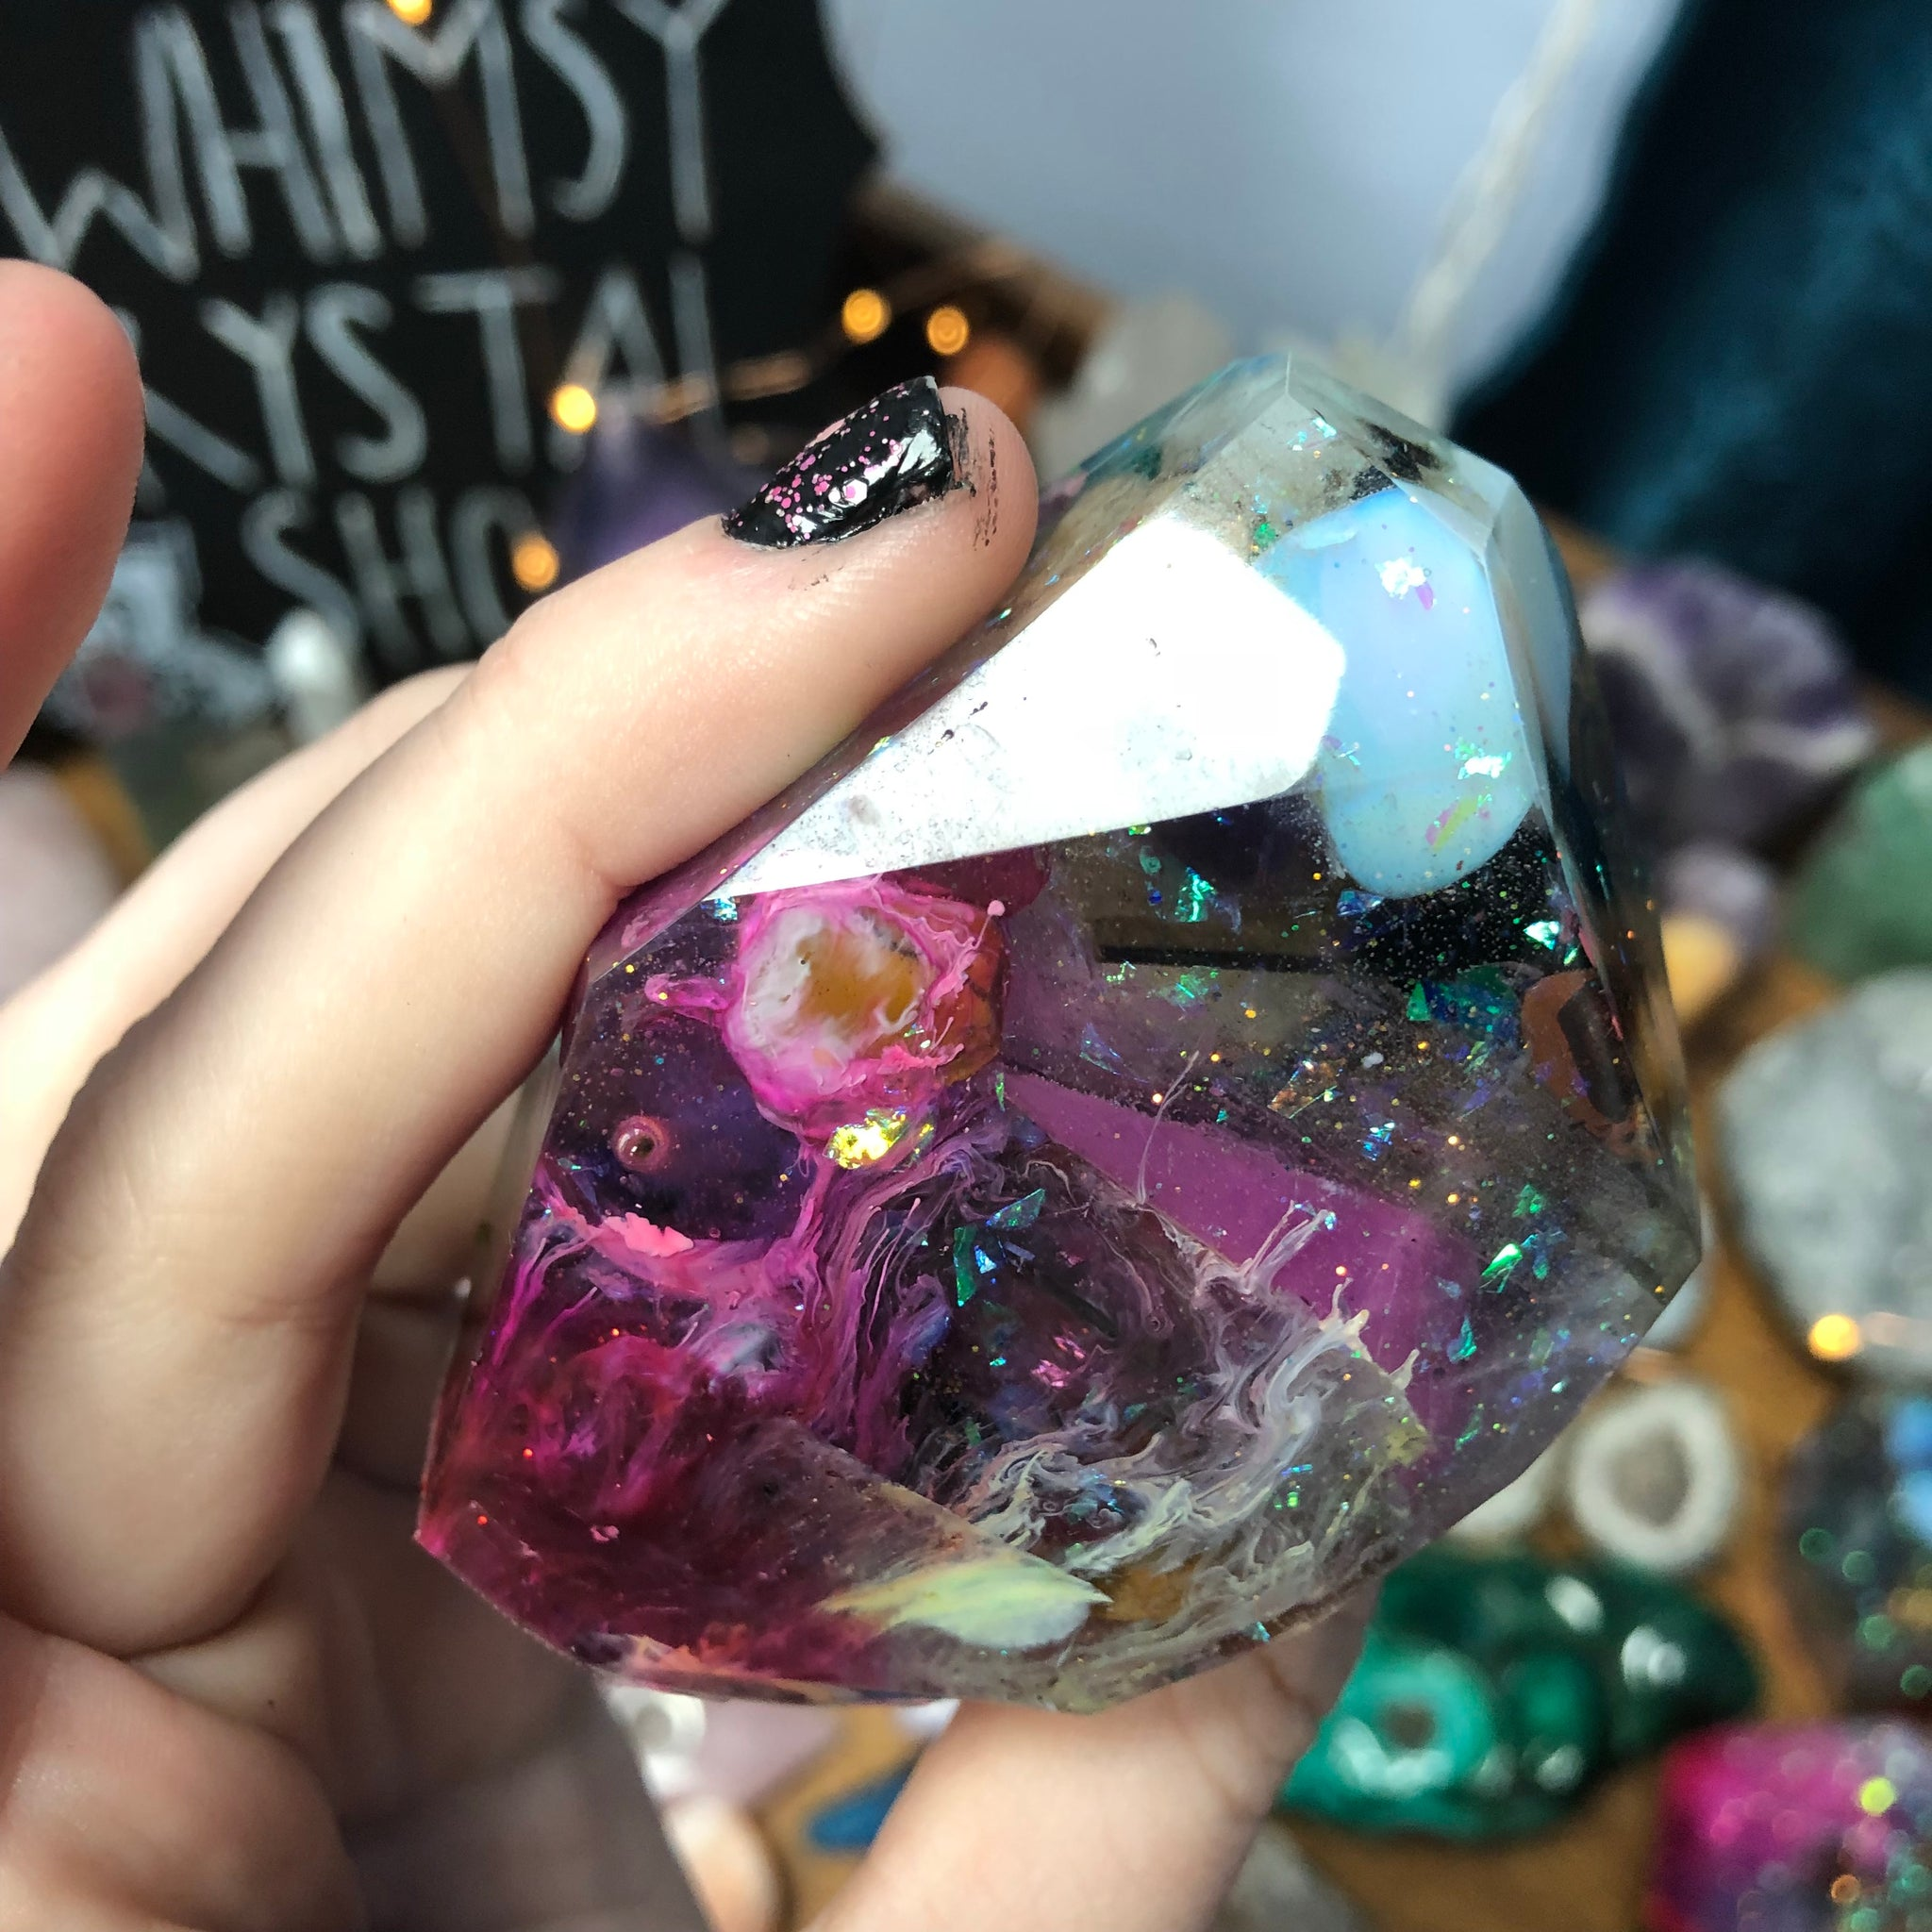 Reserved - The Whimsy Crystal Shop